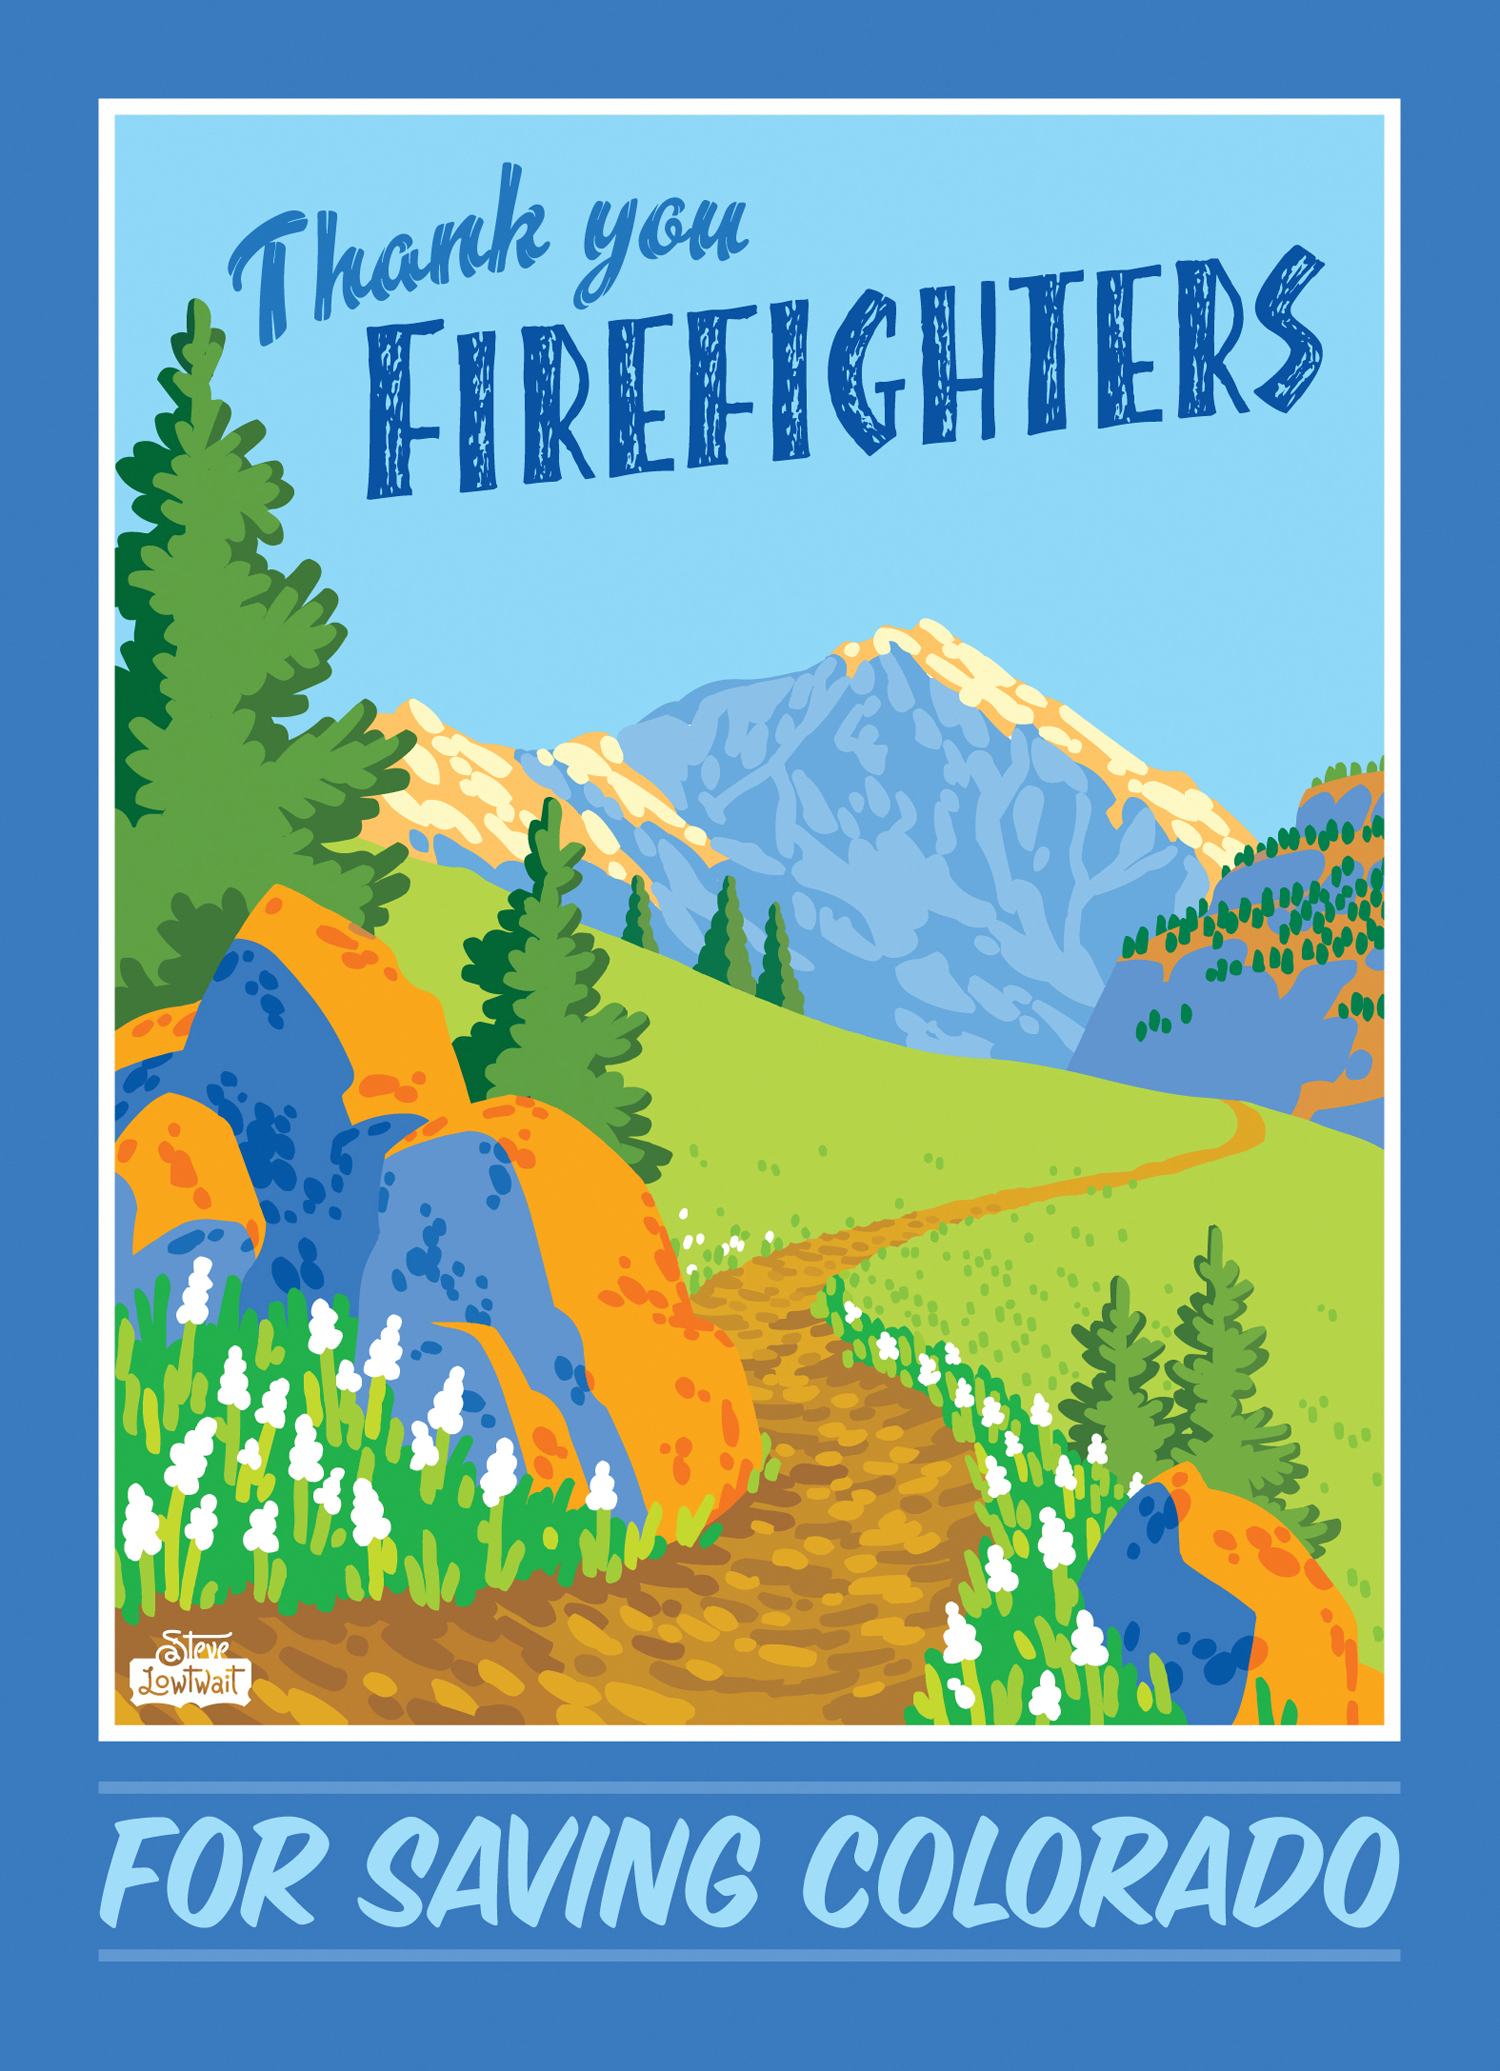 Colorado_Firefighters.jpg